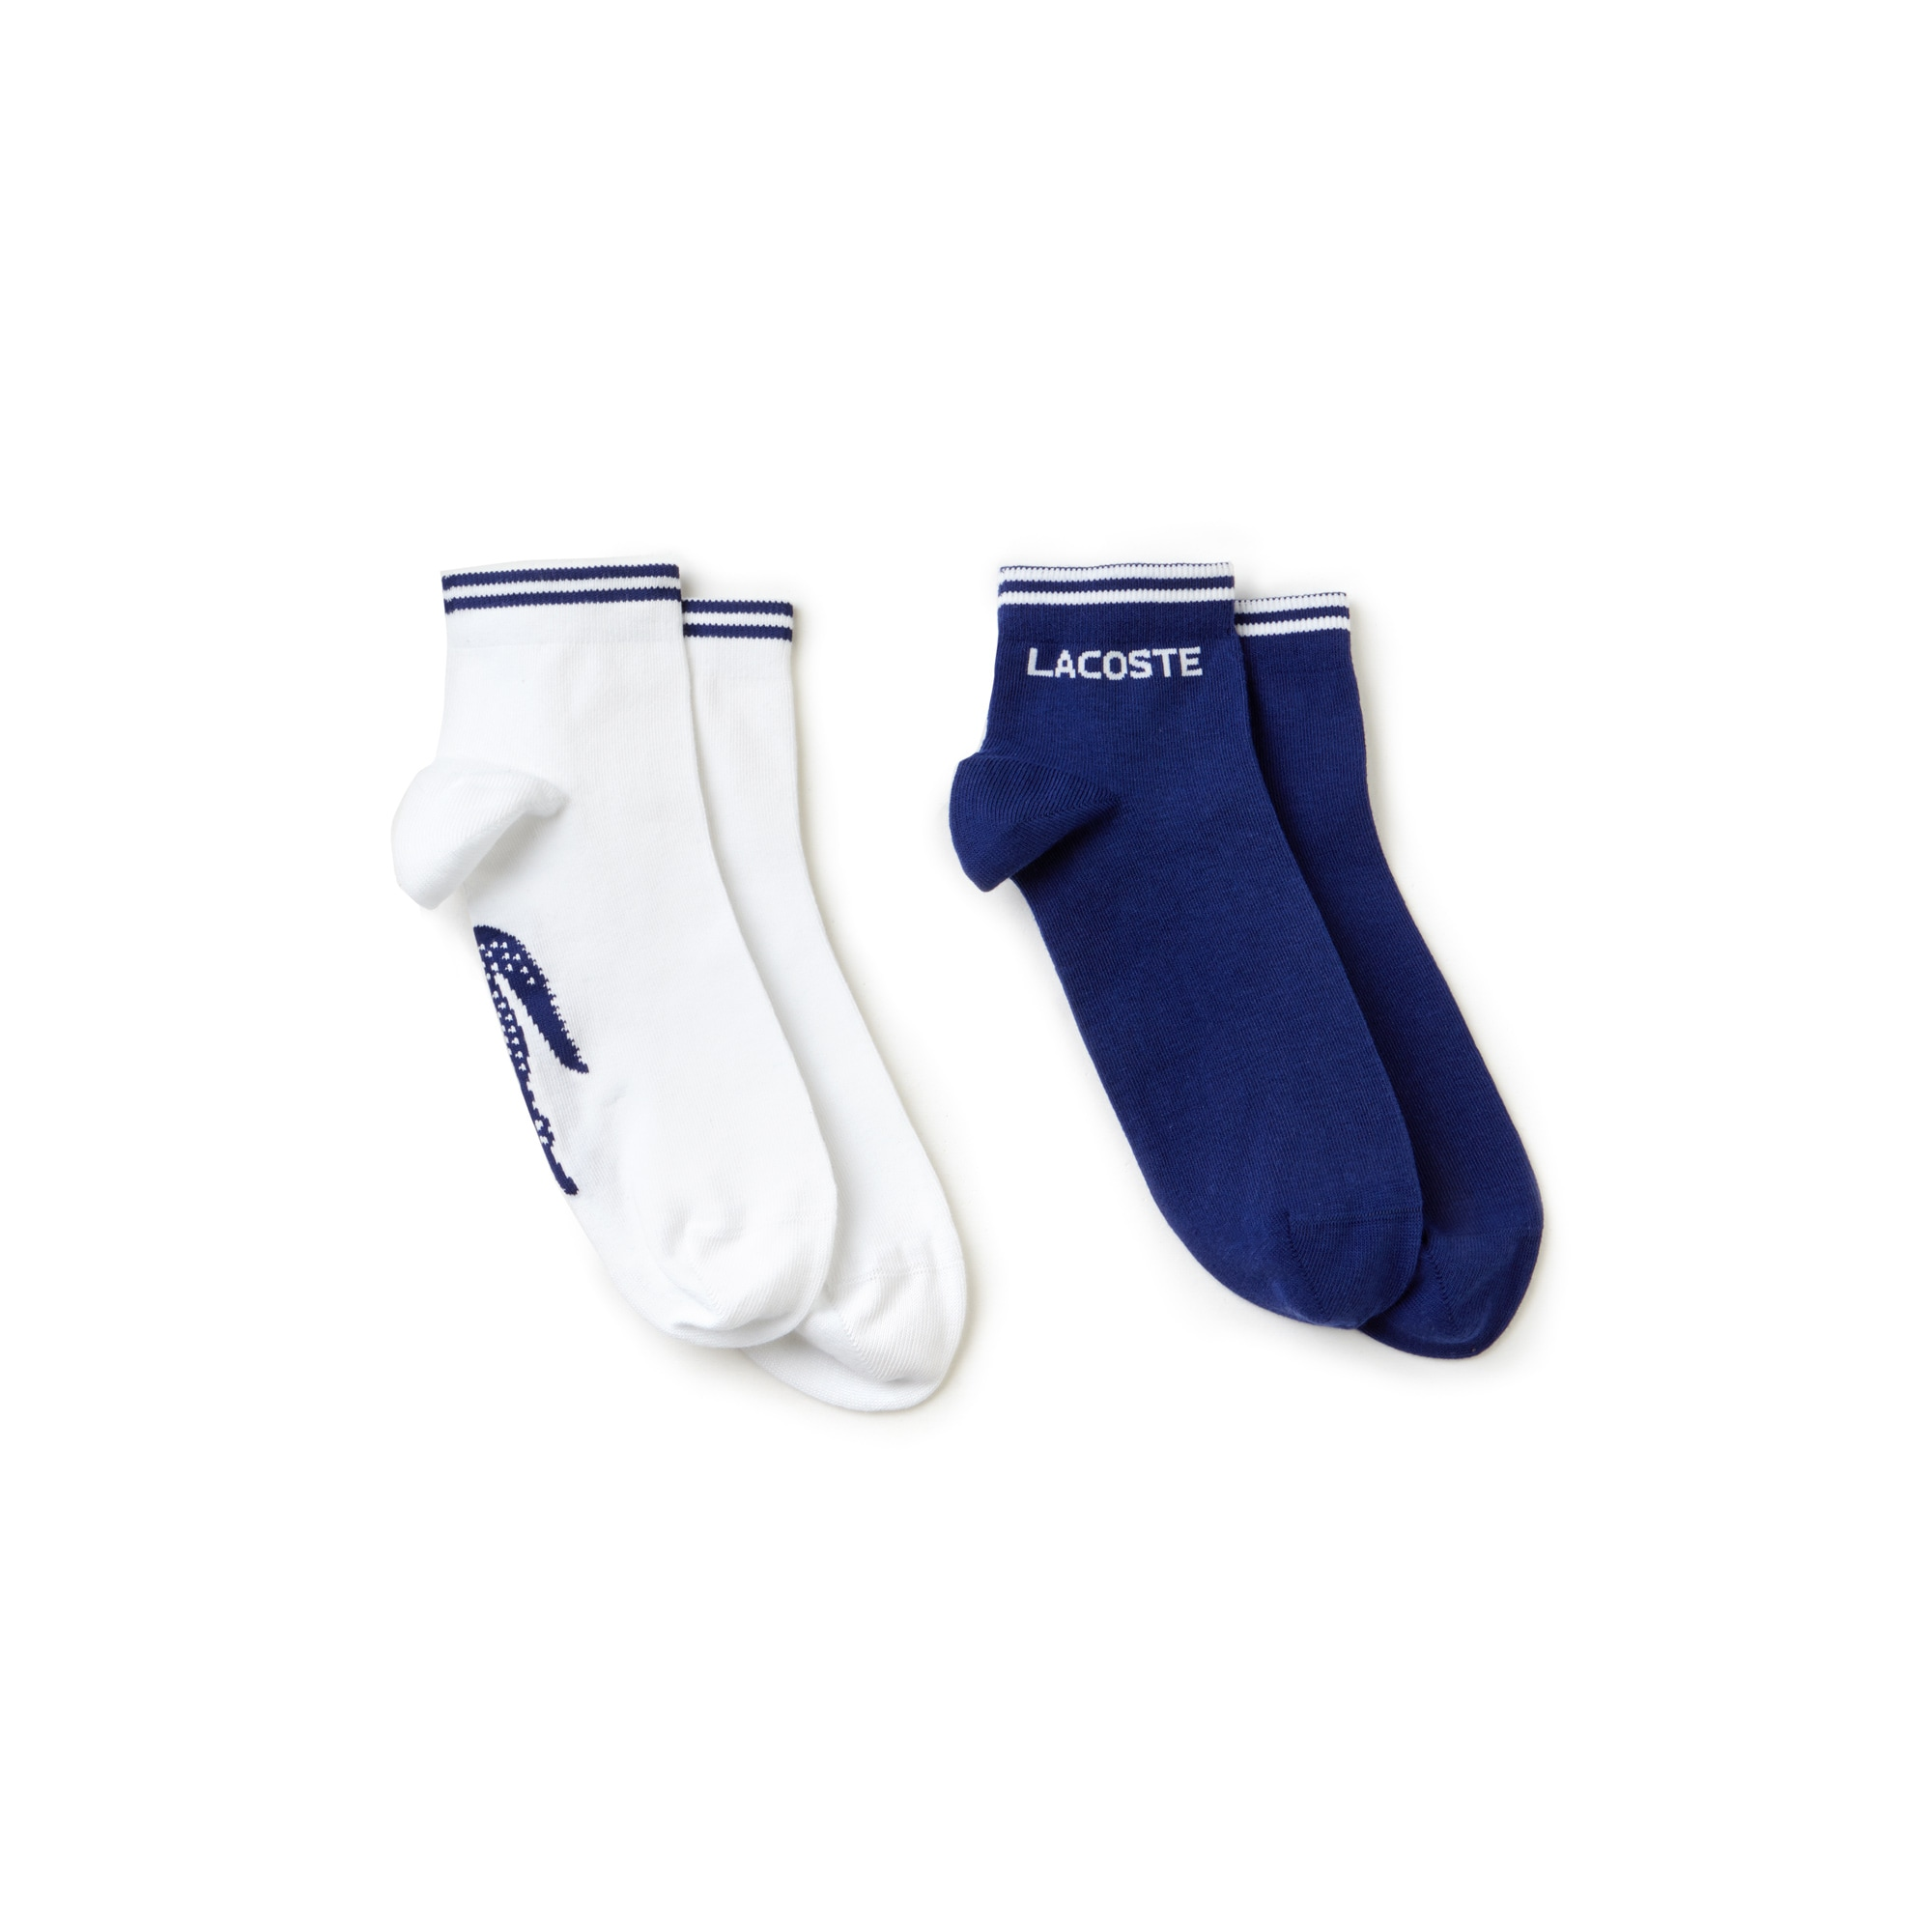 Men's Two-pack of Lacoste Tennis low-cut socks in jacquard jersey